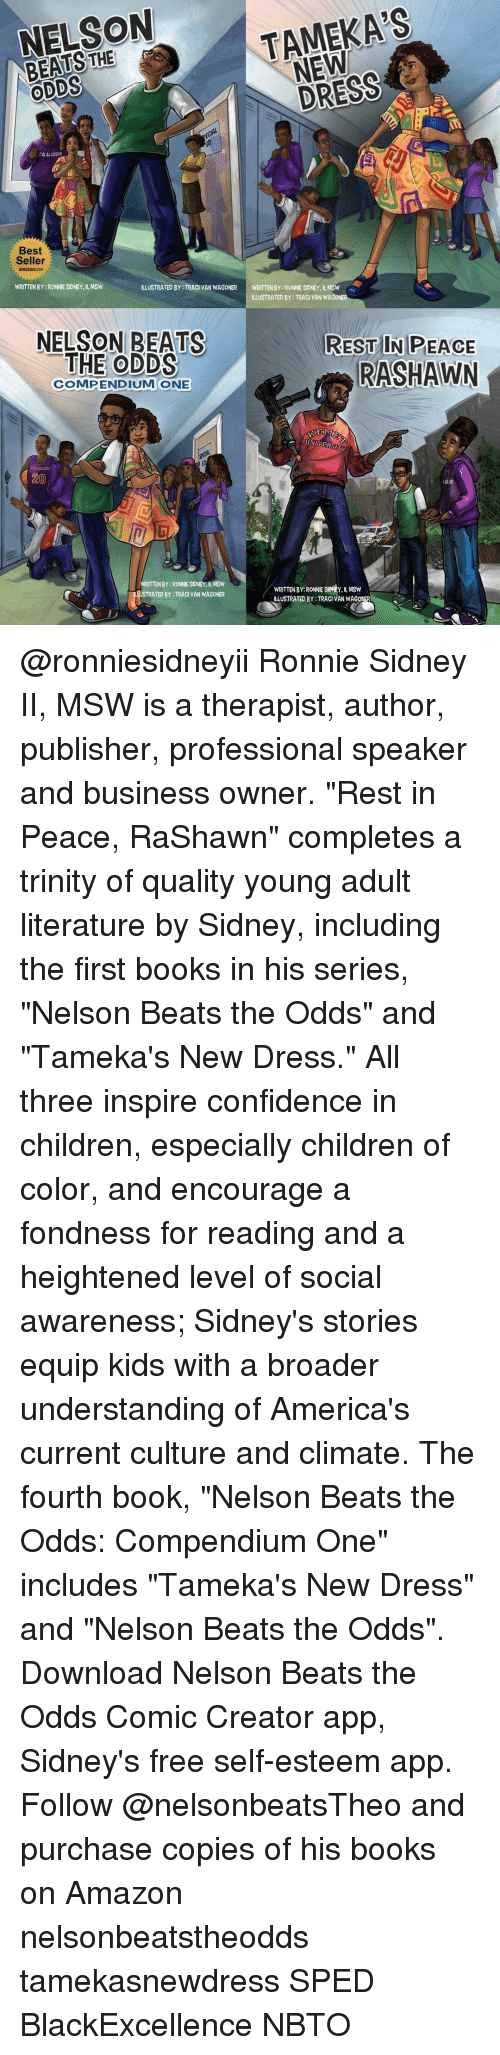 """Amazon, Books, and Children: NELSON  NEW  a ODDS  Best  Seller  WRITTEN BY RONNE SDNEY, MSW  ILLUSTRATED BY TRACI VAN WAGONER  WRITTENBY:RONNESIDNEY, ll, MSW  ILLUSTRATED BY: TRACI VAN WAGO  NELSON BEATS  REST IN PEACE  THE ODDS  RASHAWN  COMPENDIUM ONE  KE  UNIVERSITY  ITTENBY RONNESDNEY, MSW  WRITTEN BY: RONNE SIONEY, MSW  TRATED BY TRACI VAN WAGONER  ILLUSTRATED BY:TRACI VAN WAG @ronniesidneyii Ronnie Sidney II, MSW is a therapist, author, publisher, professional speaker and business owner. """"Rest in Peace, RaShawn"""" completes a trinity of quality young adult literature by Sidney, including the first books in his series, """"Nelson Beats the Odds"""" and """"Tameka's New Dress."""" All three inspire confidence in children, especially children of color, and encourage a fondness for reading and a heightened level of social awareness; Sidney's stories equip kids with a broader understanding of America's current culture and climate. The fourth book, """"Nelson Beats the Odds: Compendium One"""" includes """"Tameka's New Dress"""" and """"Nelson Beats the Odds"""". Download Nelson Beats the Odds Comic Creator app, Sidney's free self-esteem app. Follow @nelsonbeatsTheo and purchase copies of his books on Amazon nelsonbeatstheodds tamekasnewdress SPED BlackExcellence NBTO"""